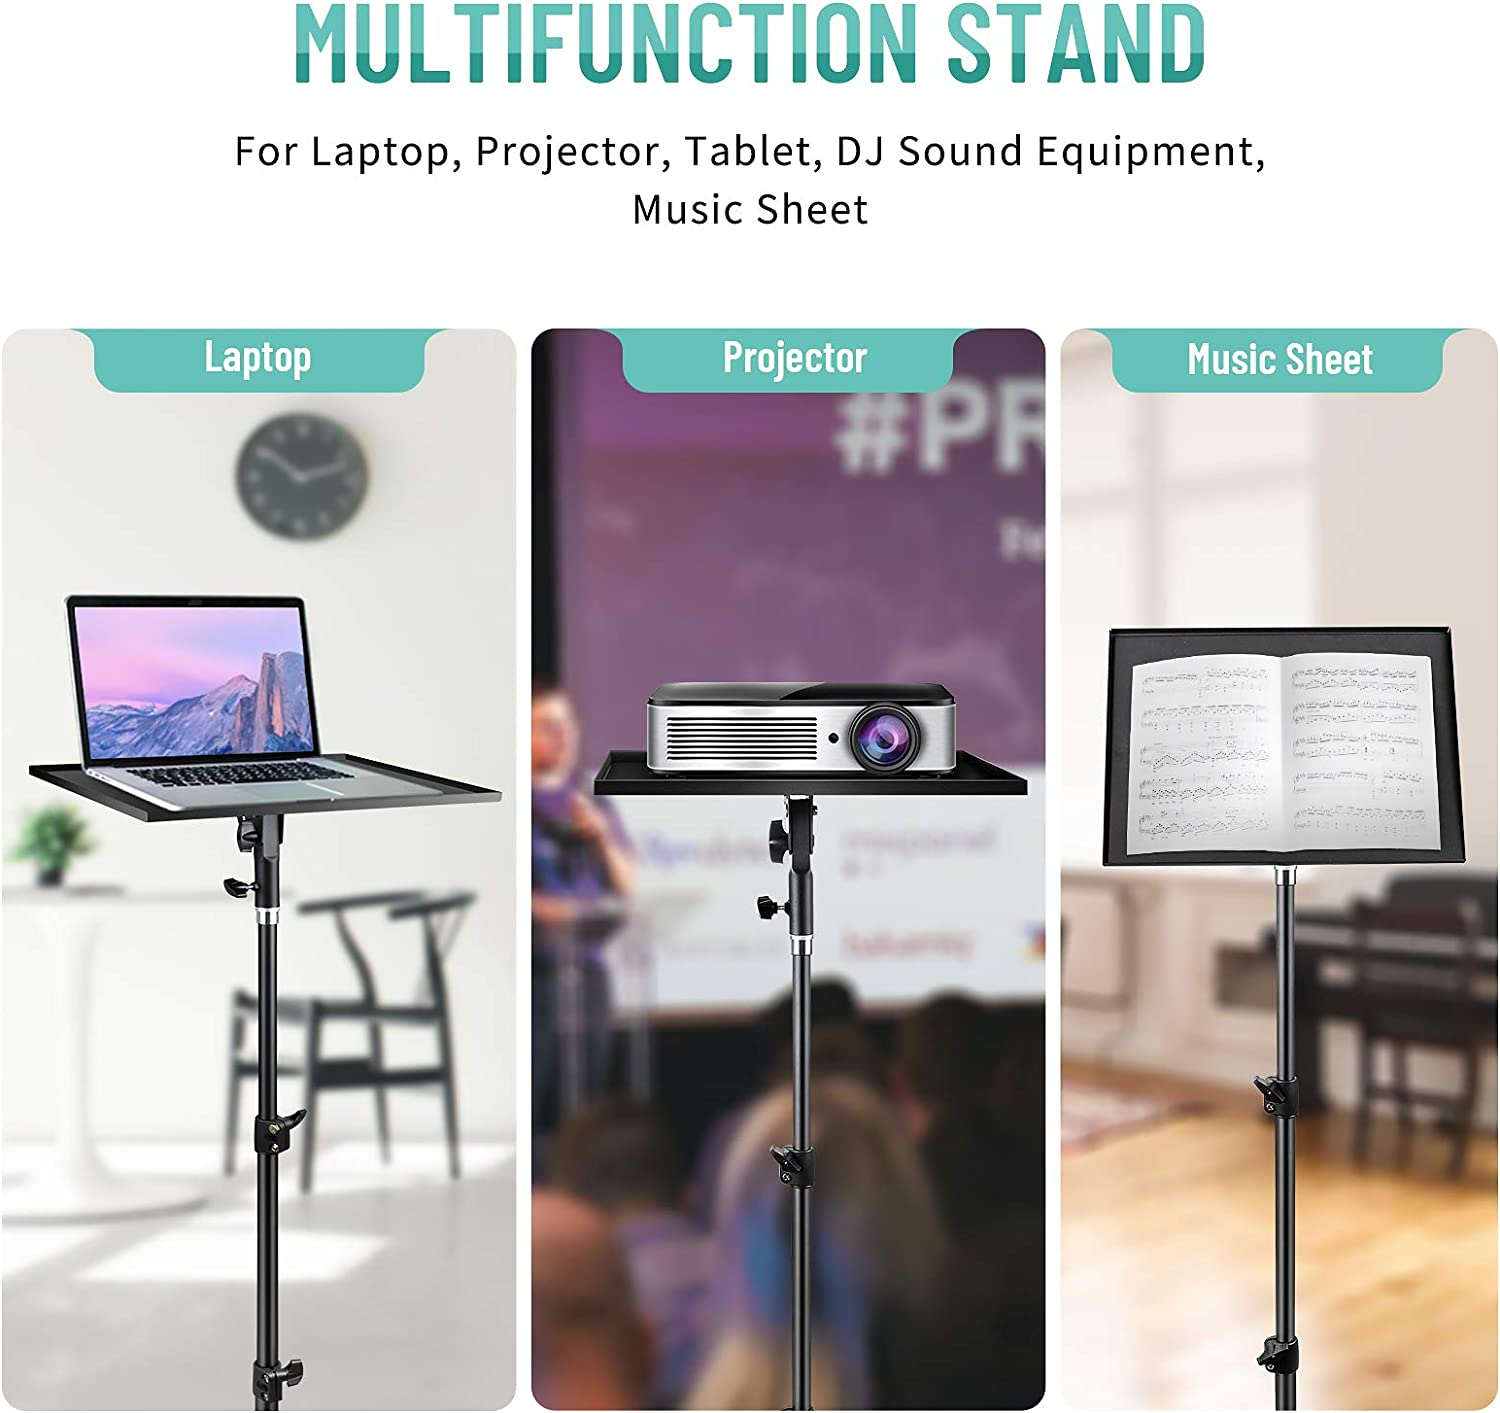 Laptop Projector Tripod Stand Height Adjustable 23 to 44 Inch Outdoor Foldable Tripod Stand for Stage or Studio Universal Adjustable Laptop Stand Computer DJ Equipment Holder Mount